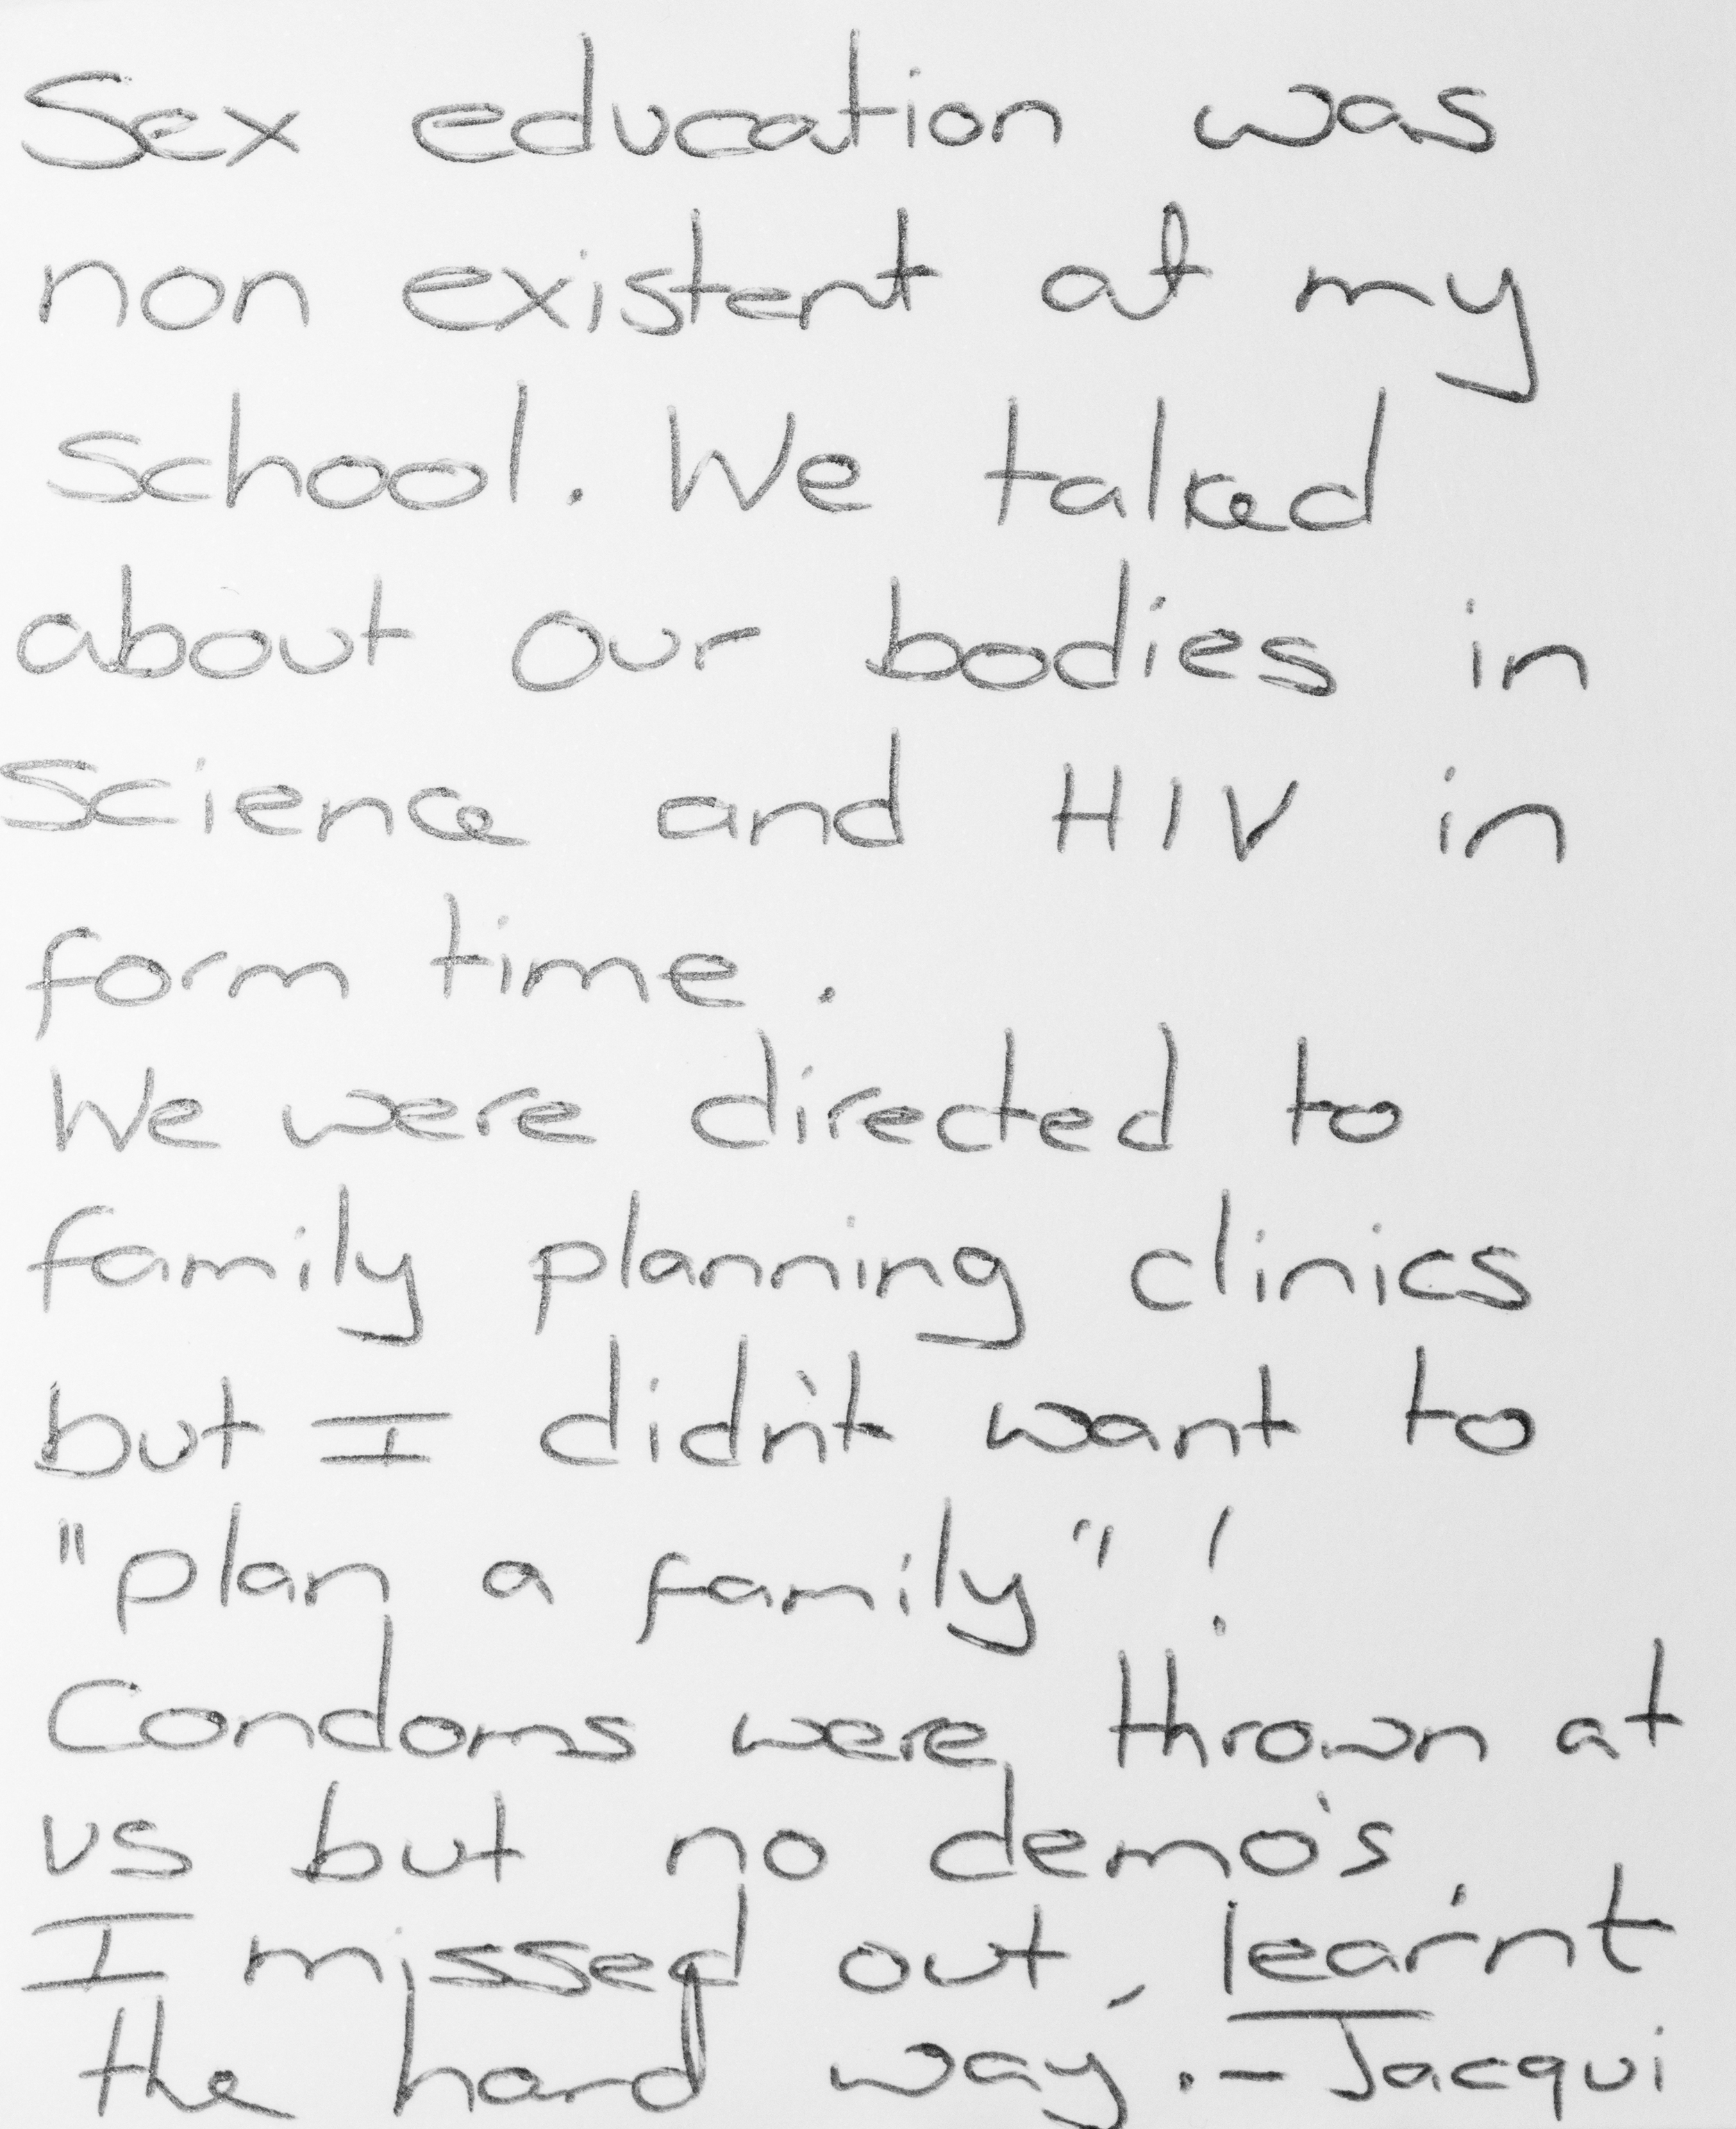 "Sex education was non existent at my school. We talked about our bodies in science and HIV in form time.   We were directed to family planning clinics but I didn't want to ""plan a family""!   Condoms were thrown at us but no demos. I missed out, learnt the hard way. -Jacqui"